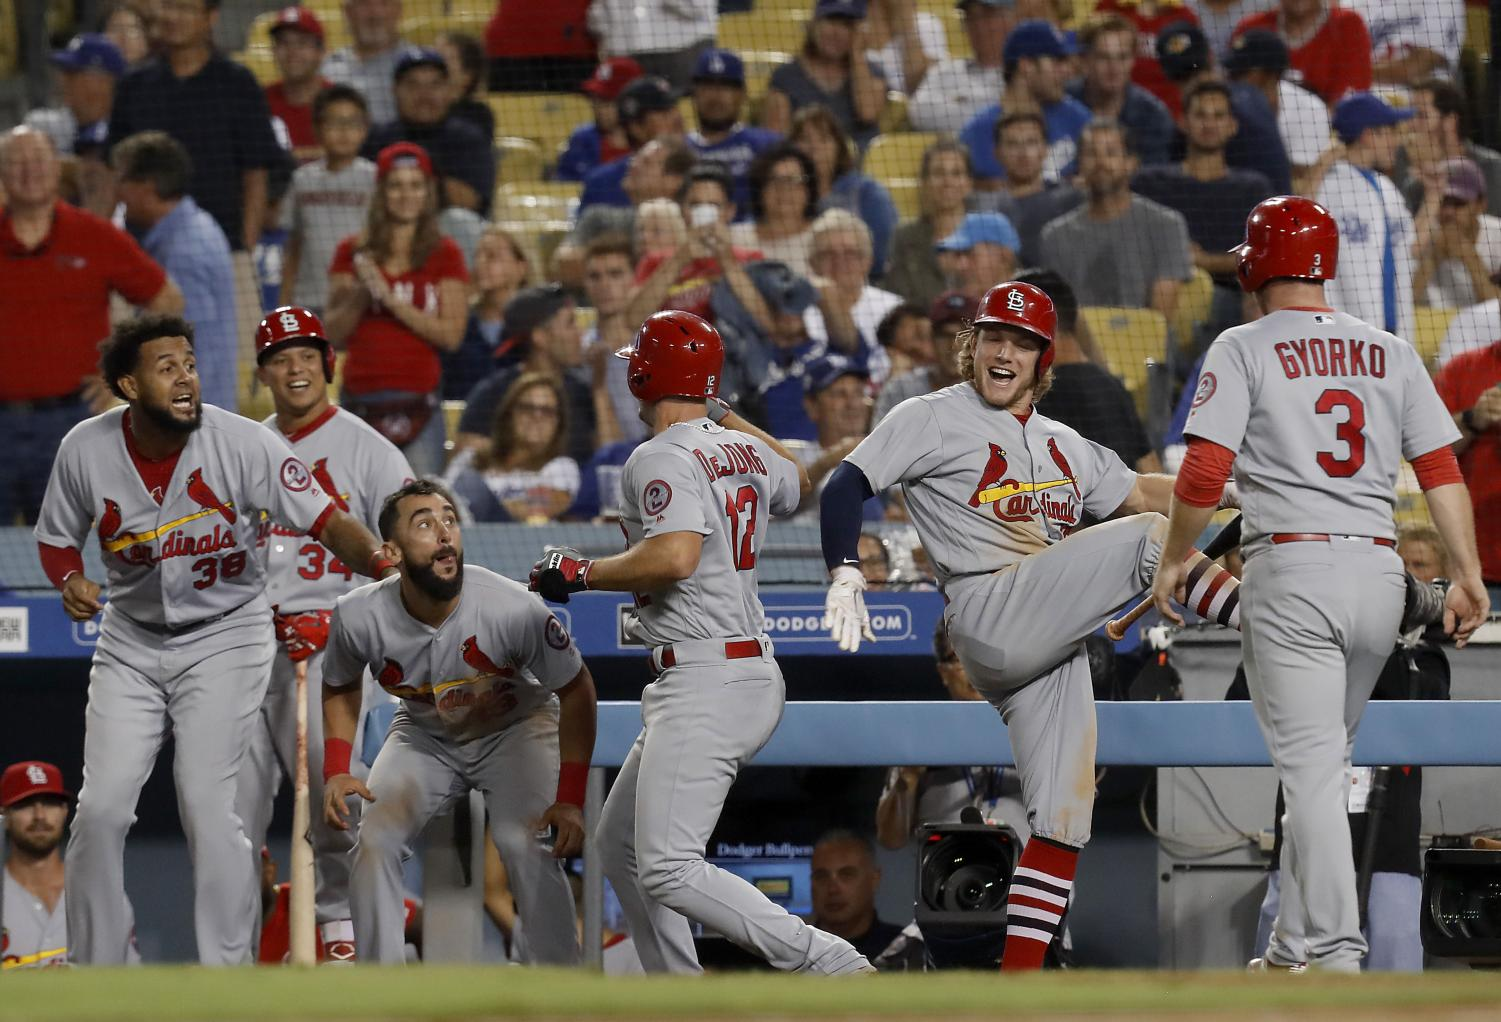 The St. Louis Cardinals' Paul Delong (12) celebrates with teammates after hitting a two-run home run against the Los Angeles Dodgers in the ninth inning on Wednesday, Aug. 22, 2018, at Dodger Stadium in Los Angeles. The Cardinals won, 3-1. (Luis Sinco/Los Angeles Times/TNS)